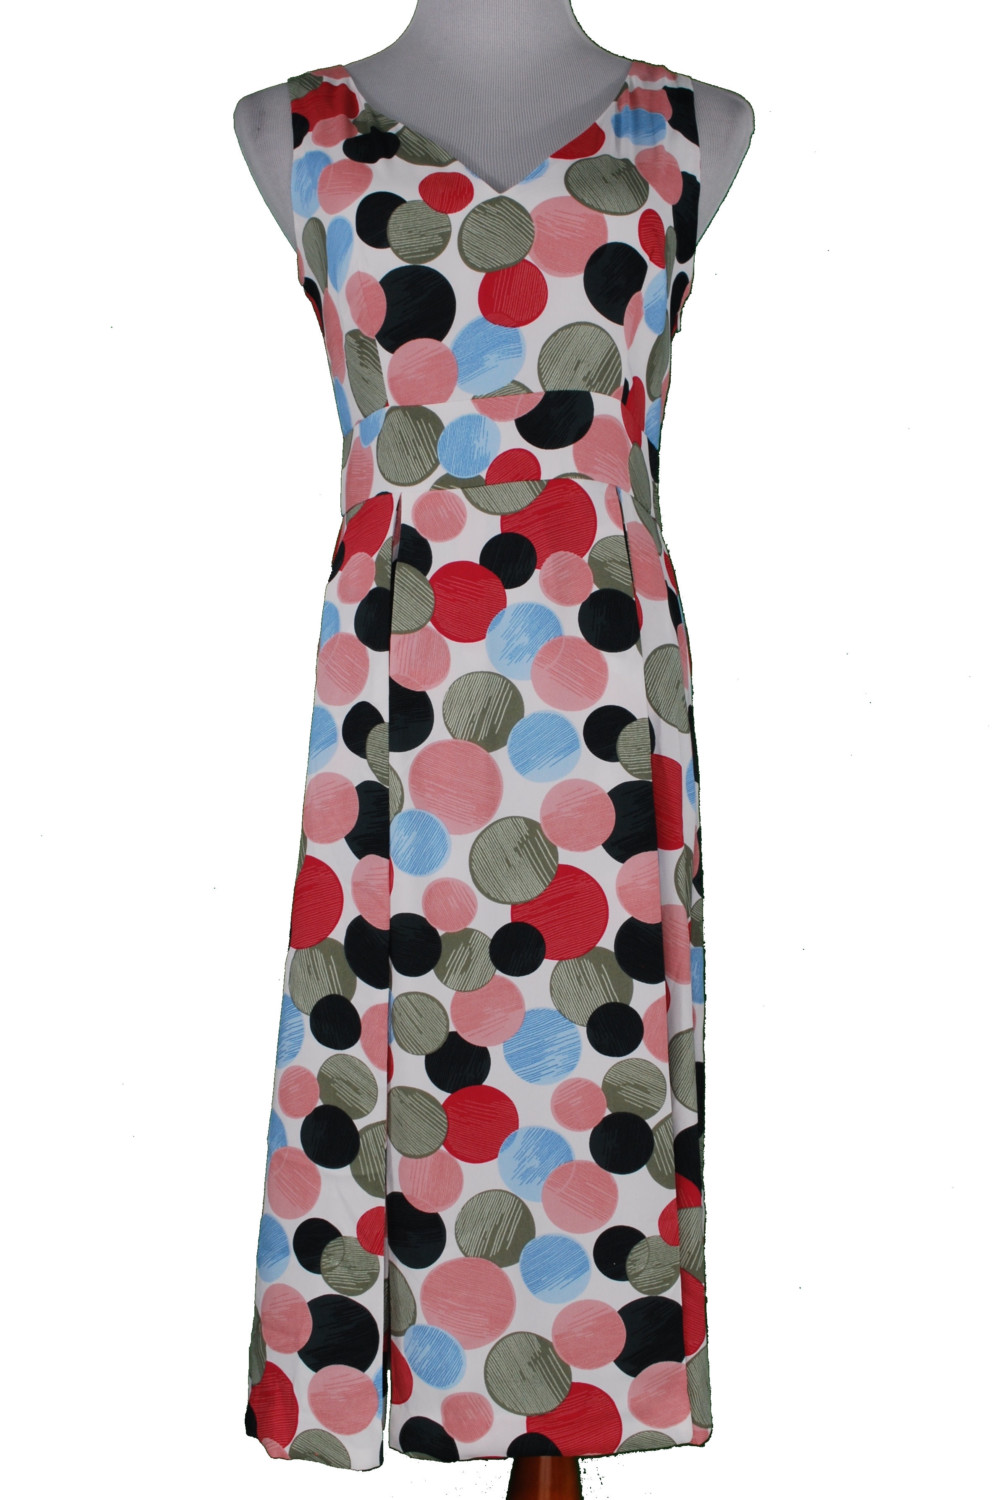 Anne Klein Dress – Original Retail: $128, CWS: $28